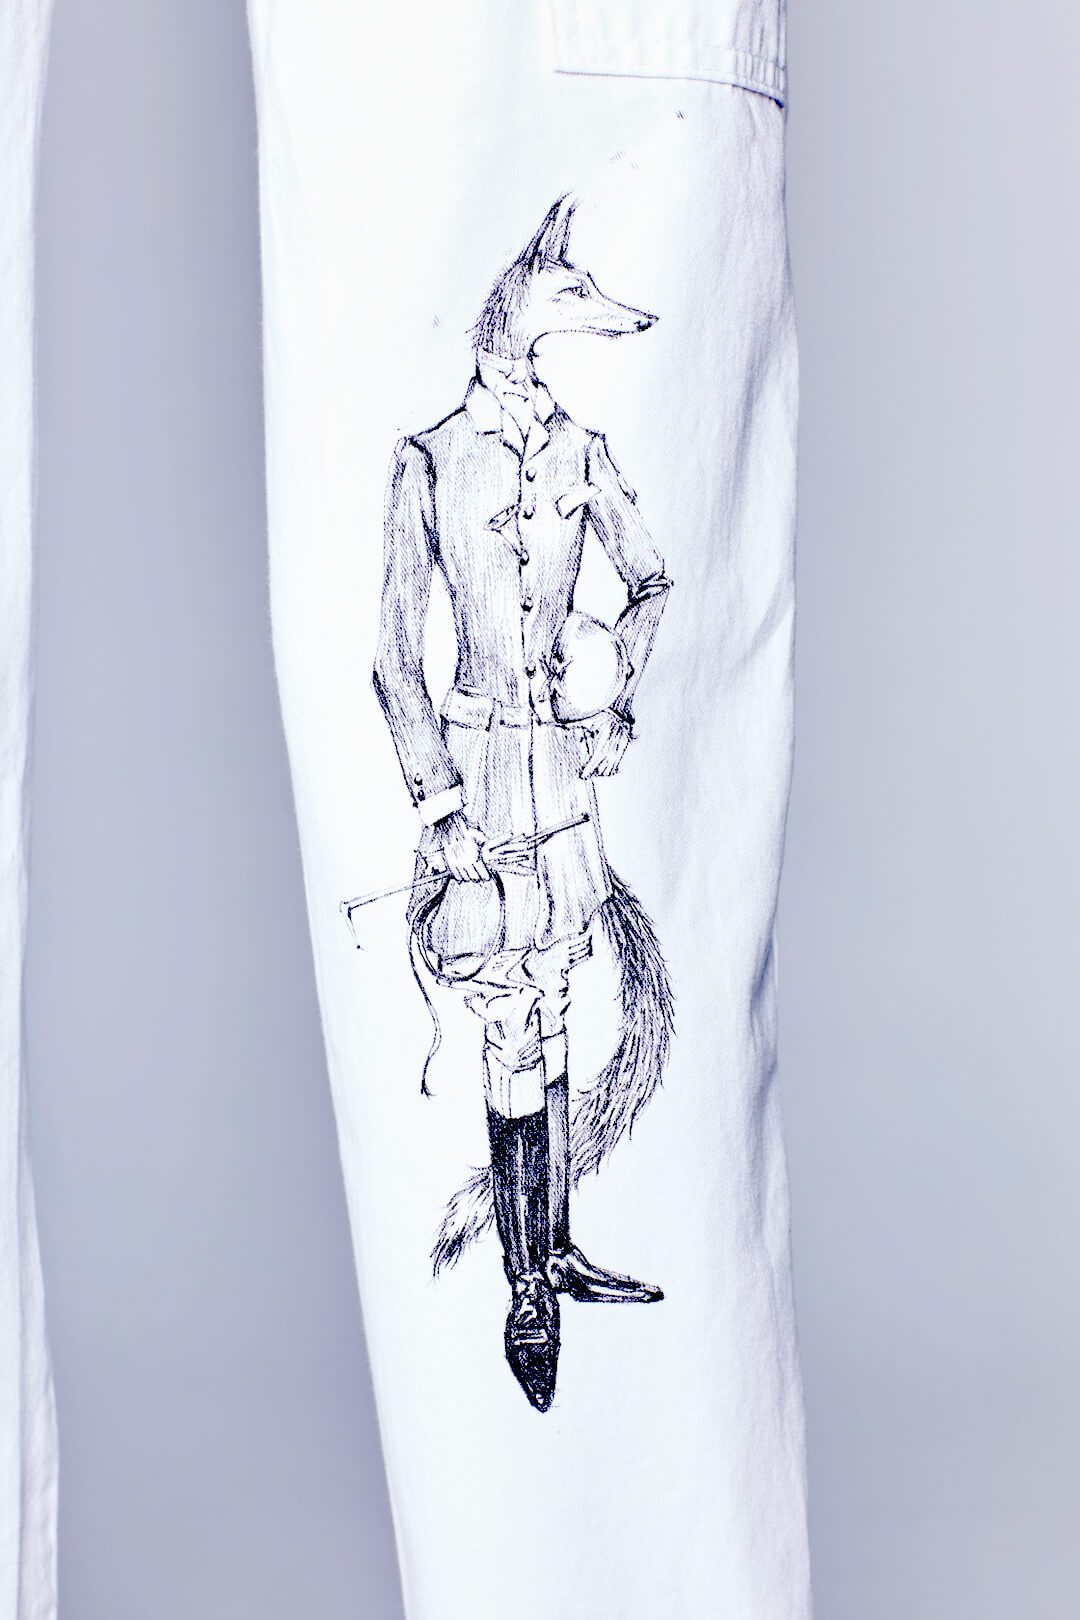 Detail view of Natasha Portait Pant by Natasha Blodgett featuring a fox in Hunt Attire